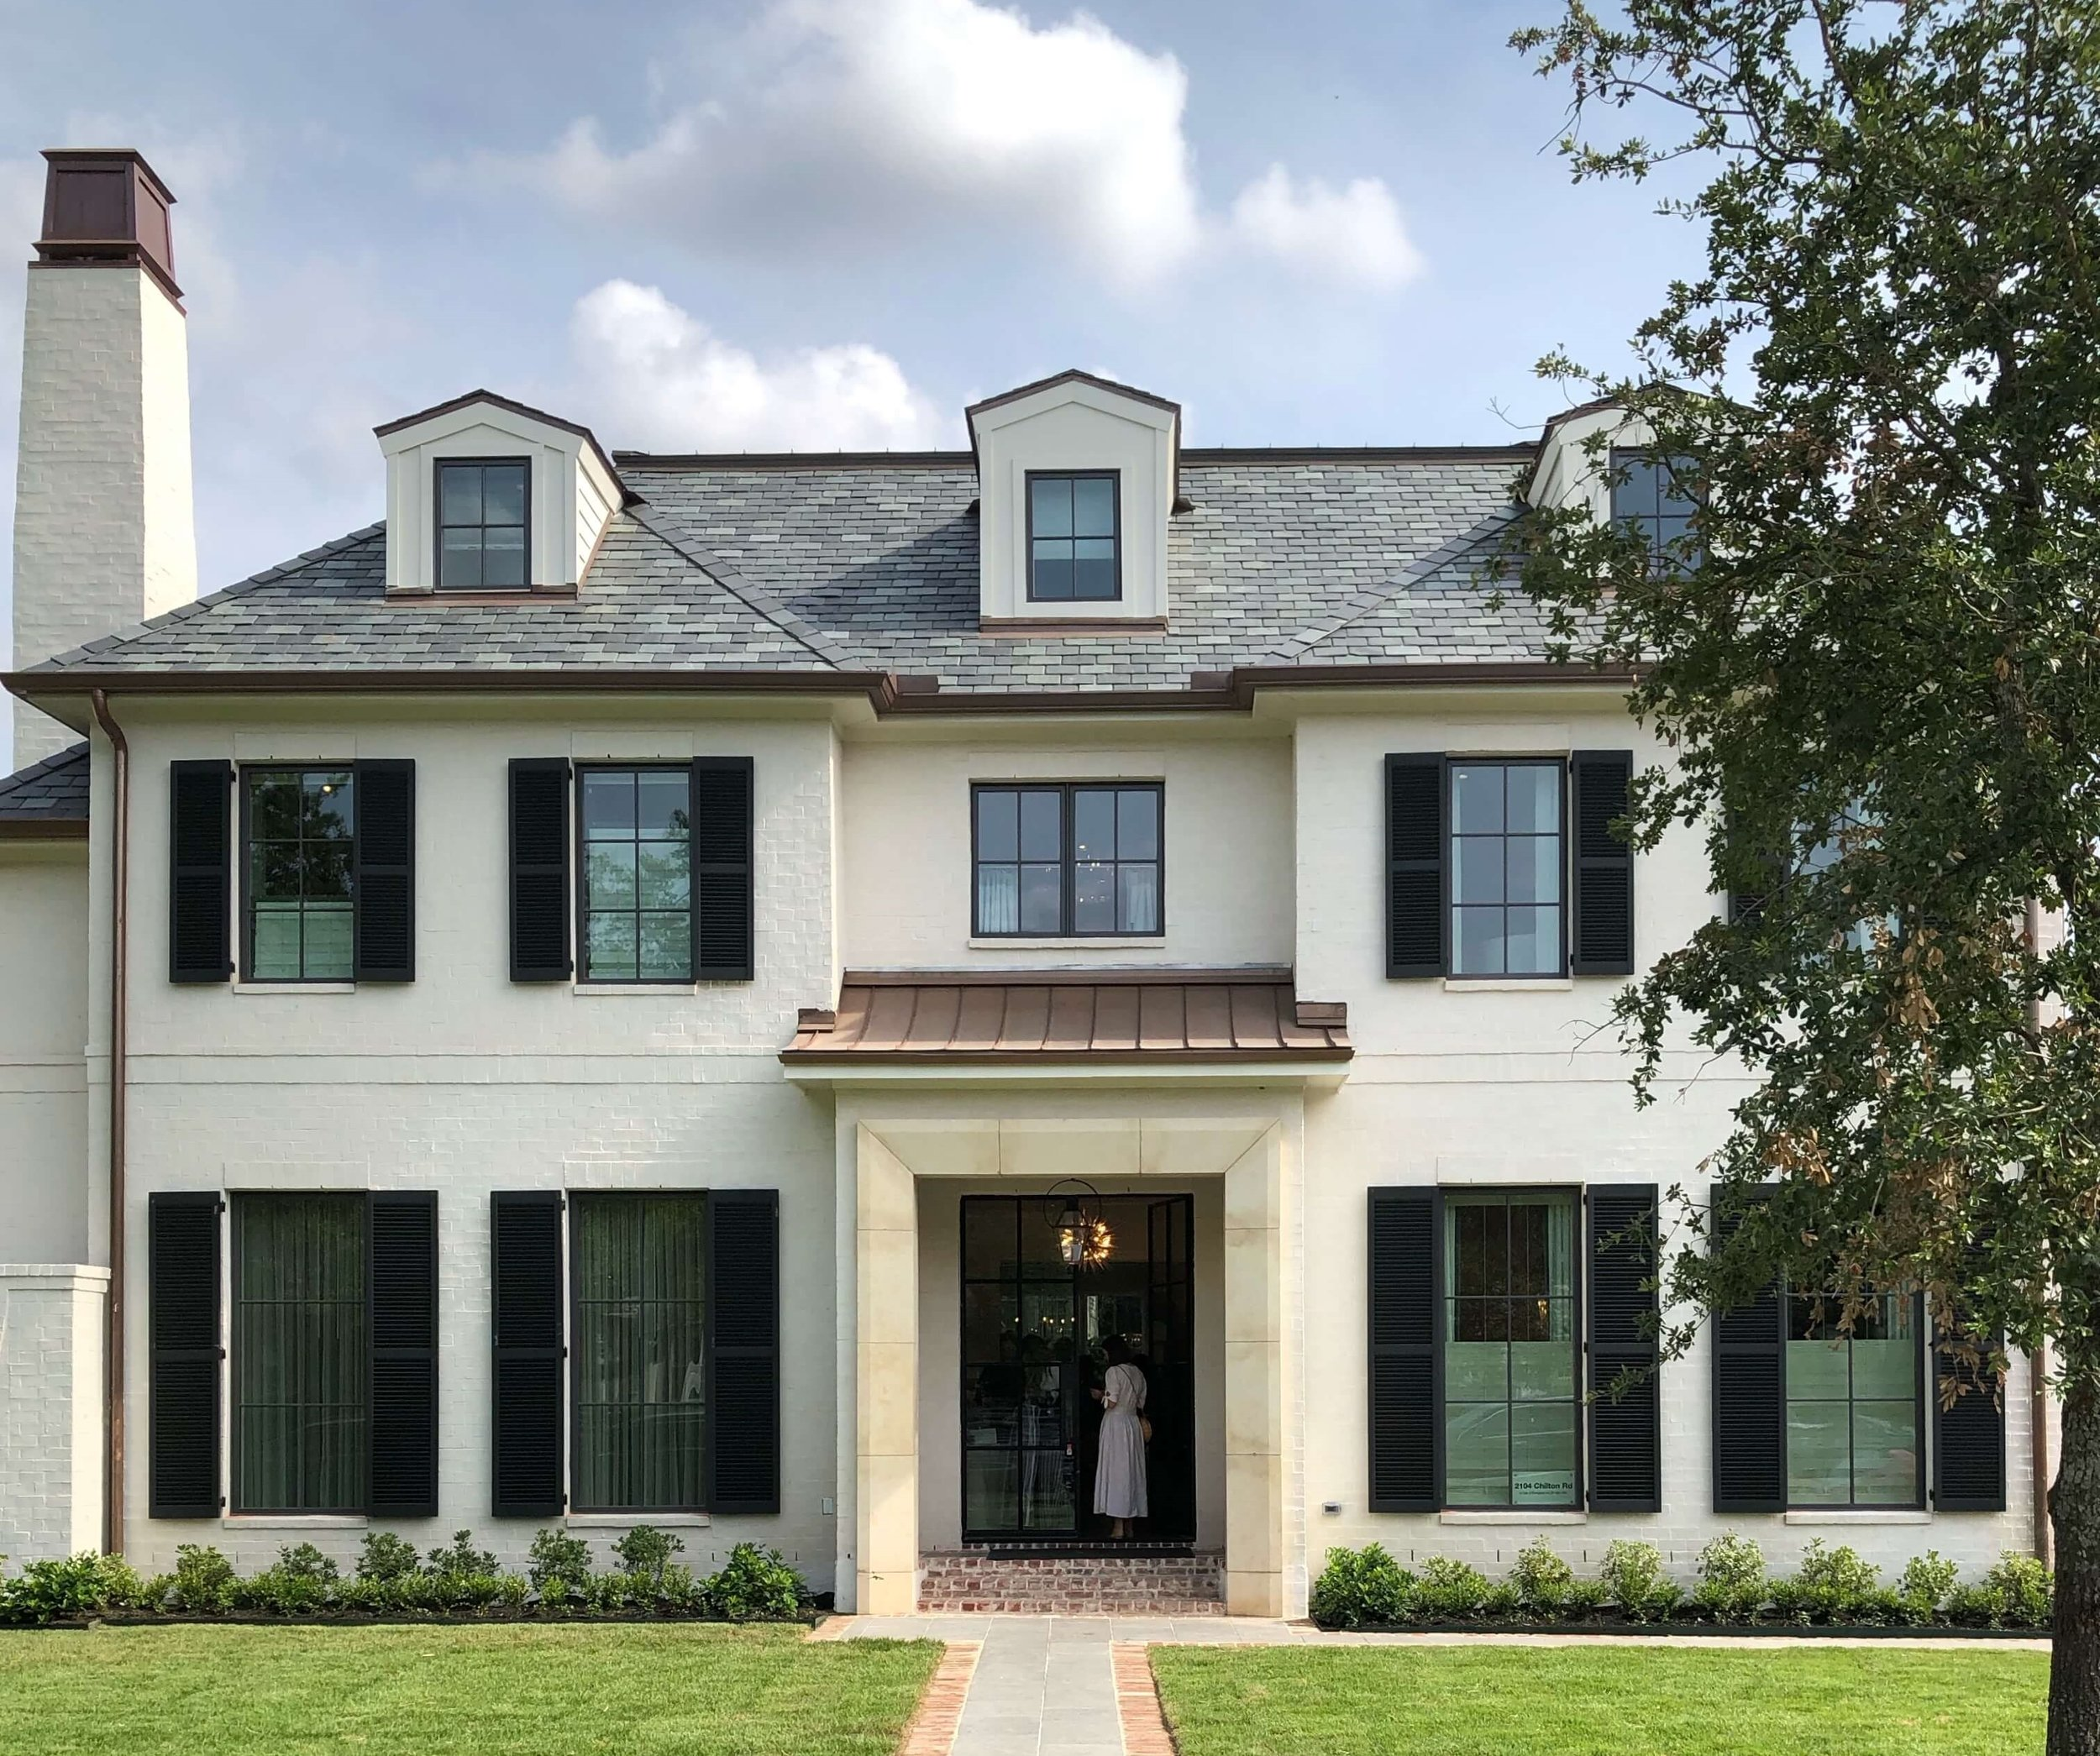 ASID Showhouse, River Oaks, Houston | Builder, Welch Builders Brokers